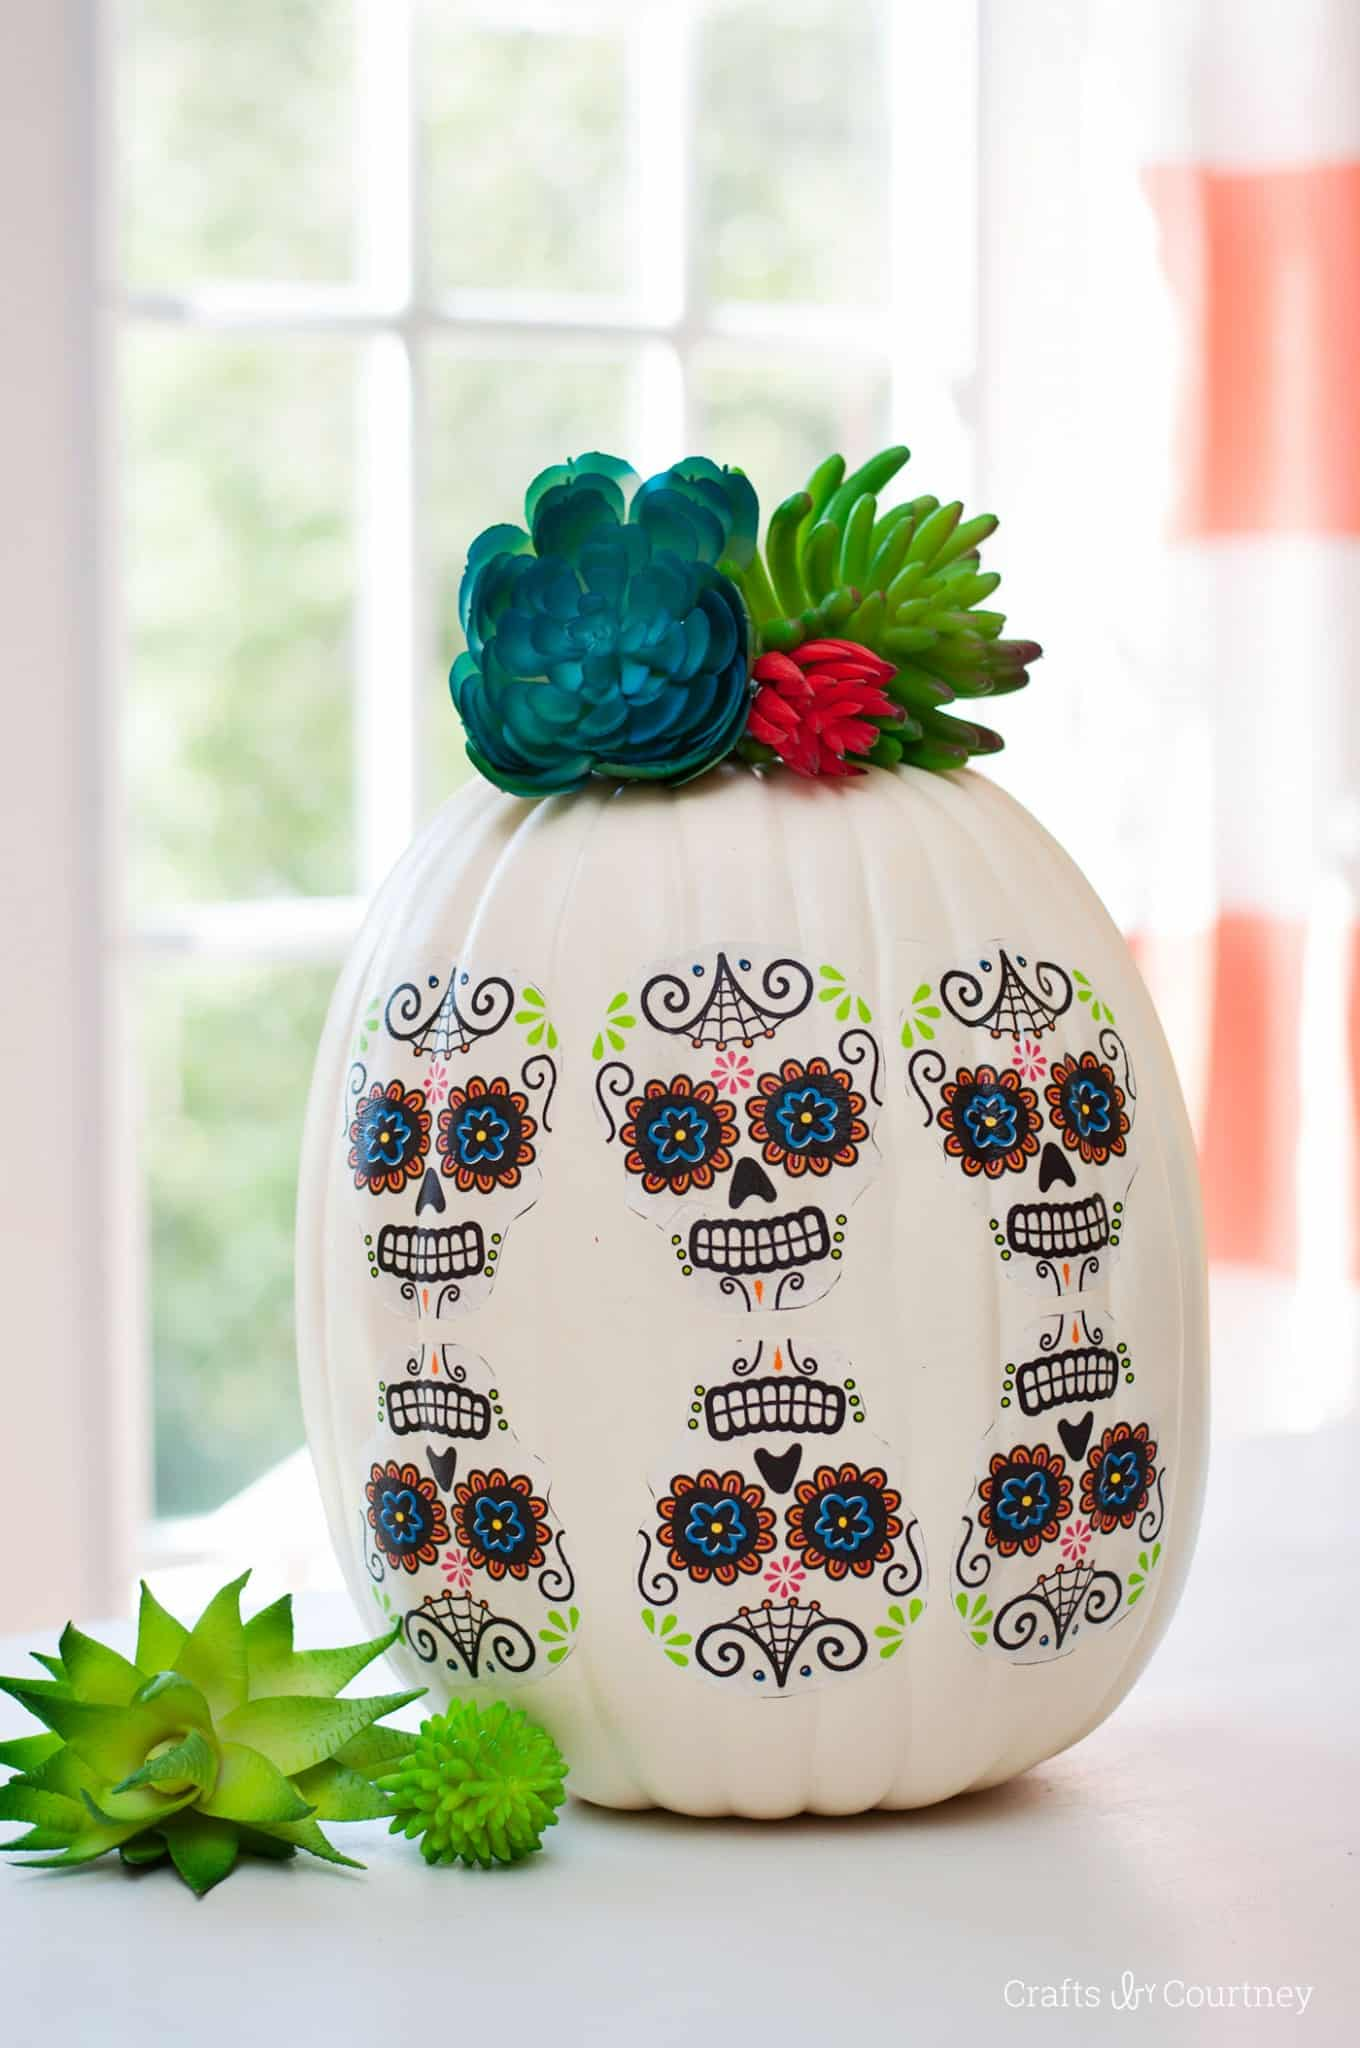 Are you ready for a cool Day of the Dead pumpkin craft you can make in minutes? You can customize this project with any napkins you like.